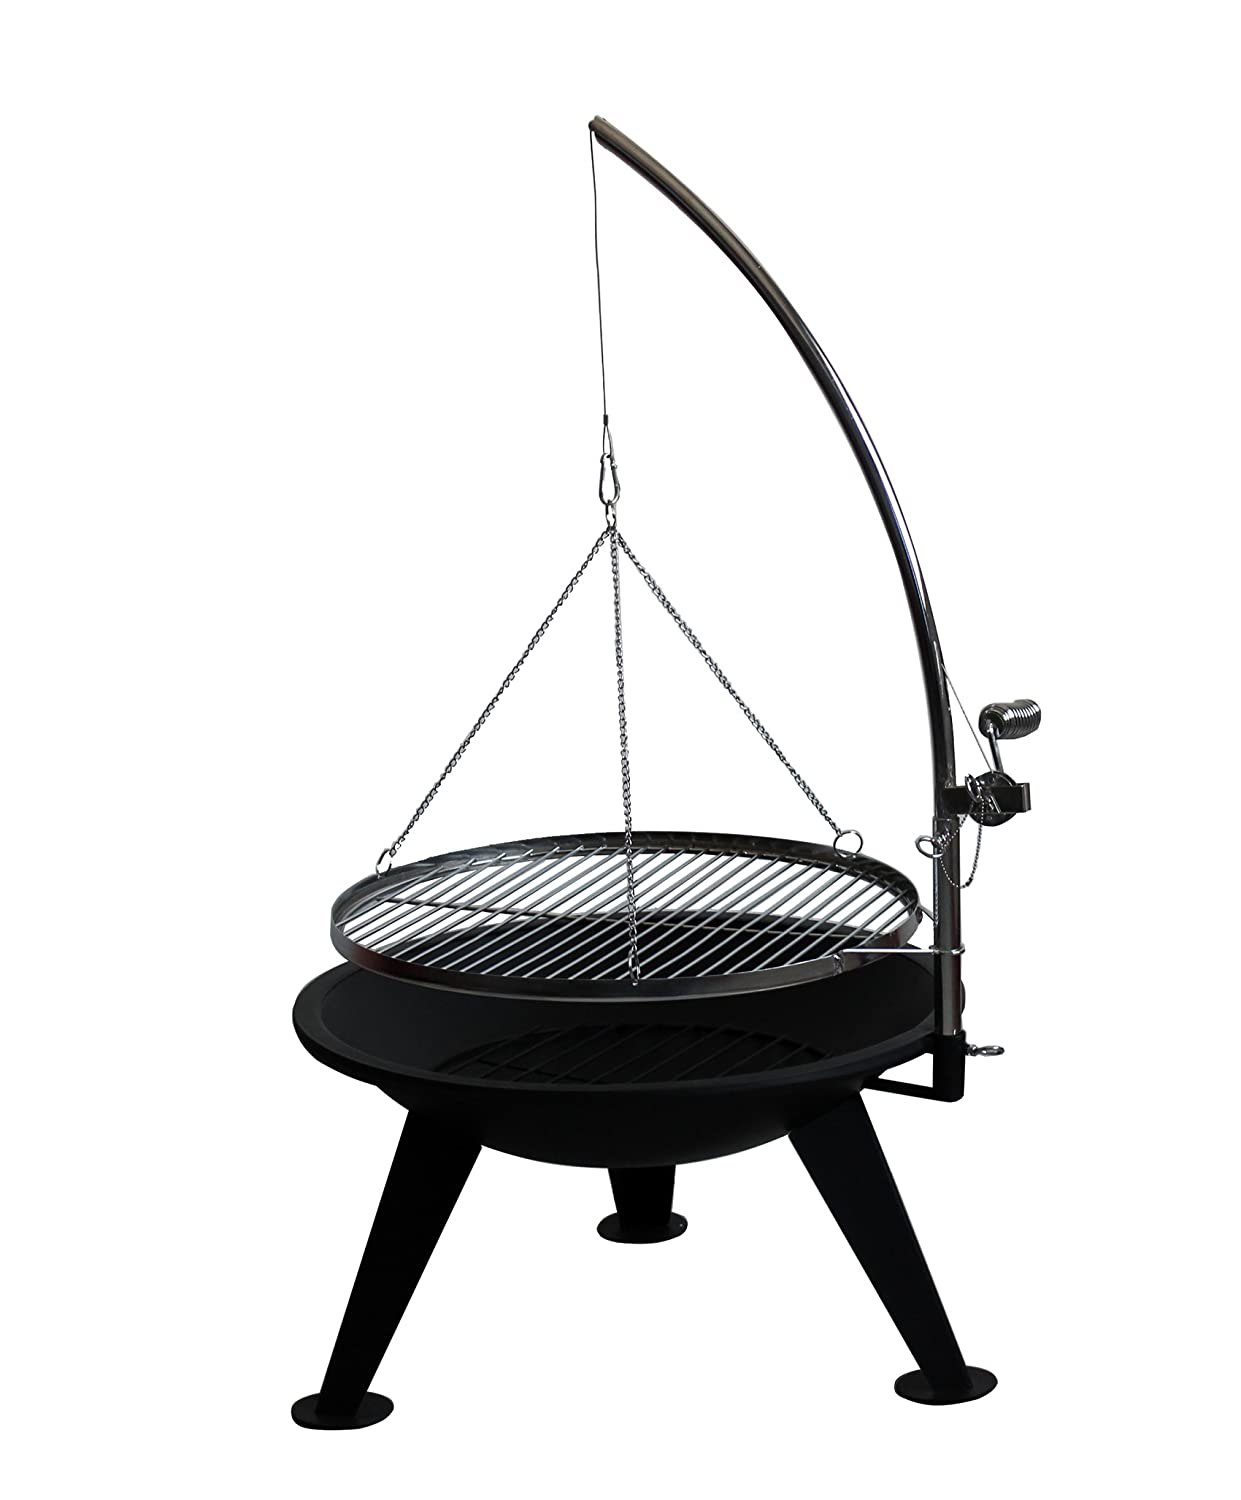 Nimbus Barbecue Fire Pit - Big 65 cm Bowl - Suspended Adjustable BBQ Chrome Grill - with poker